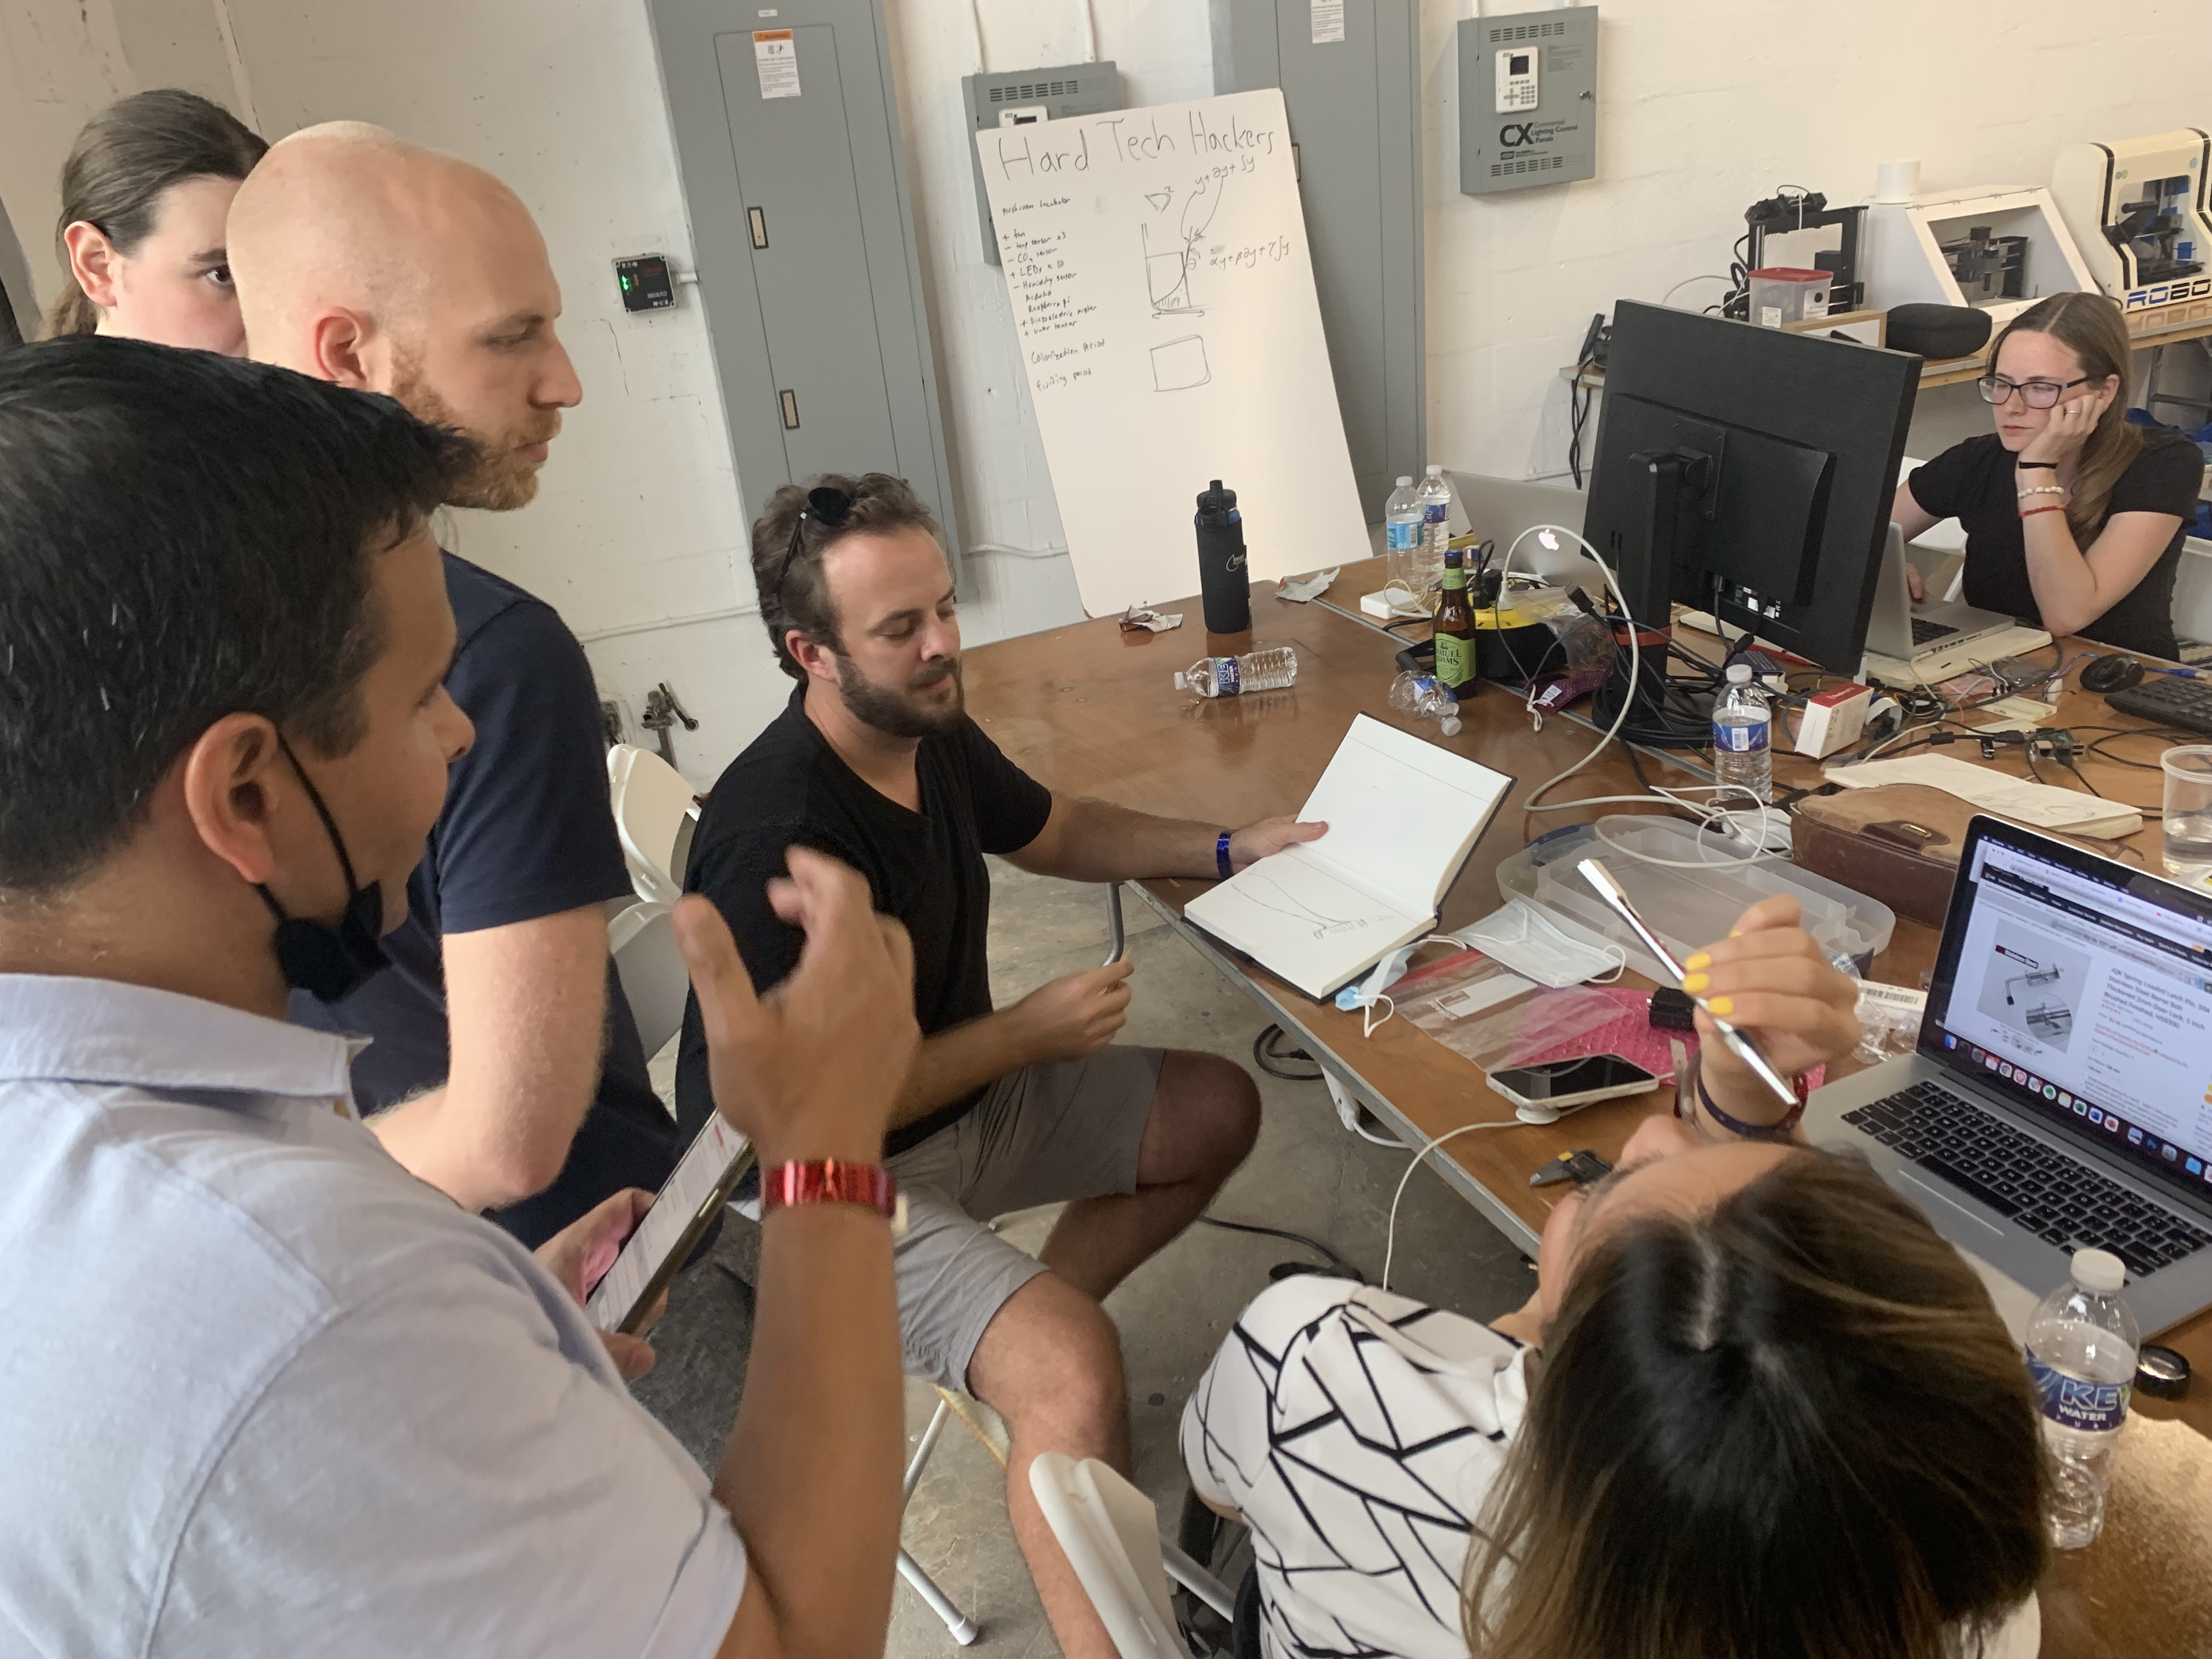 Hard Tech Miami members brainstorming ways to approach building a project